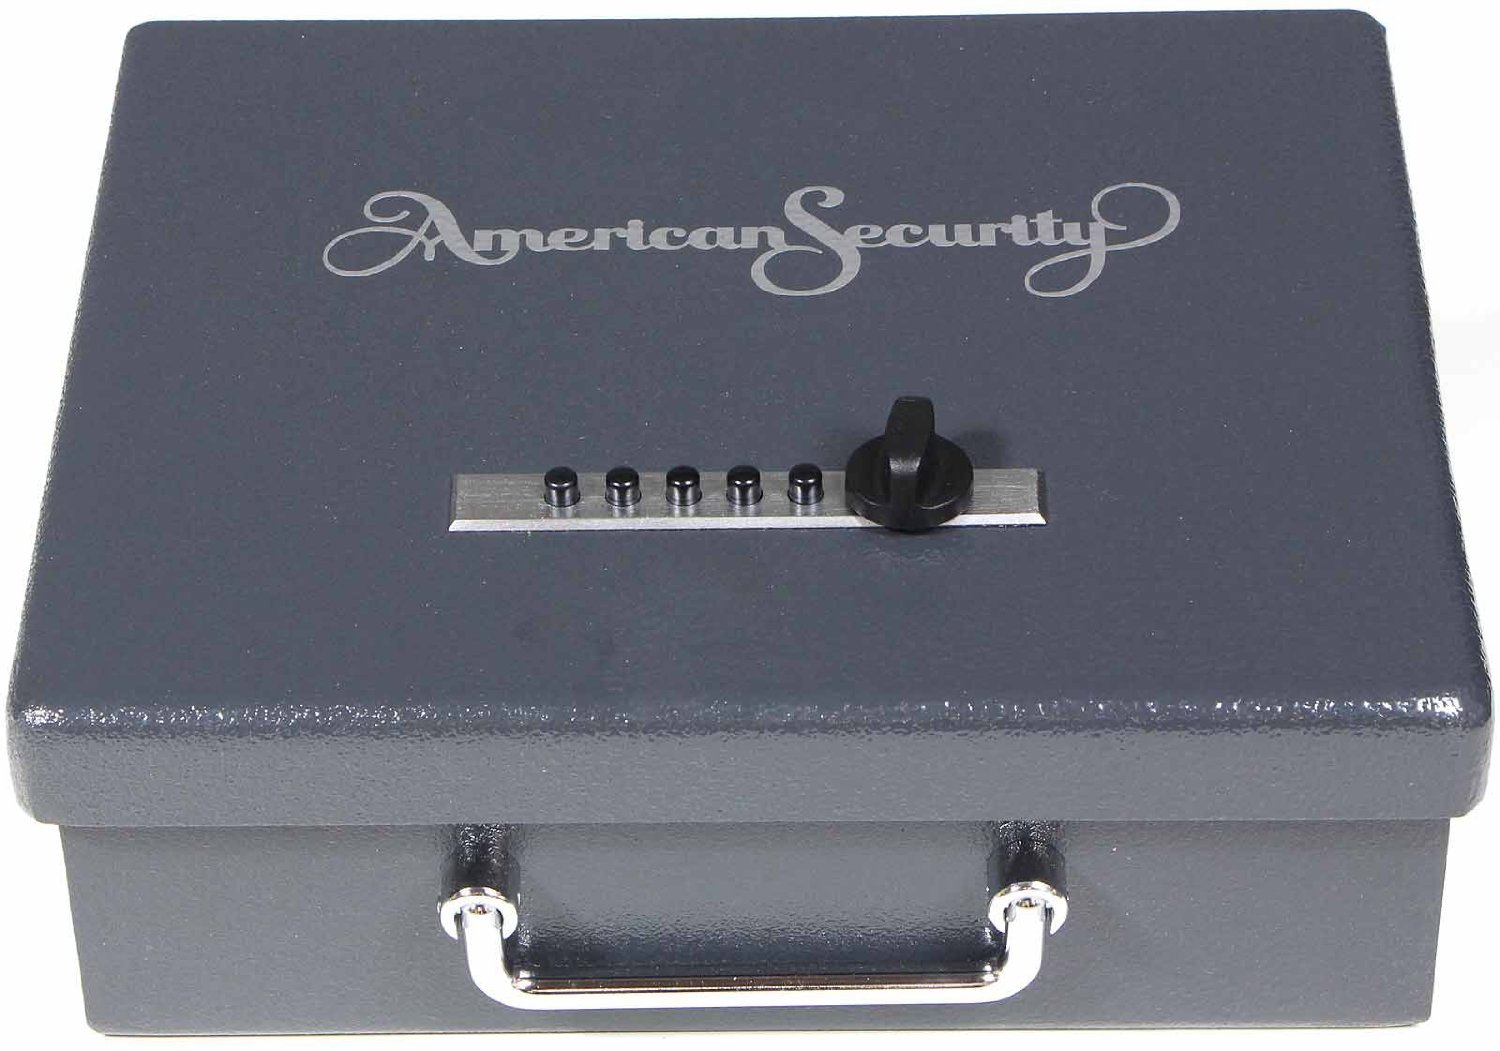 the American Security AMSEC PS1210HD Pistol Safe Handgun Box is shown